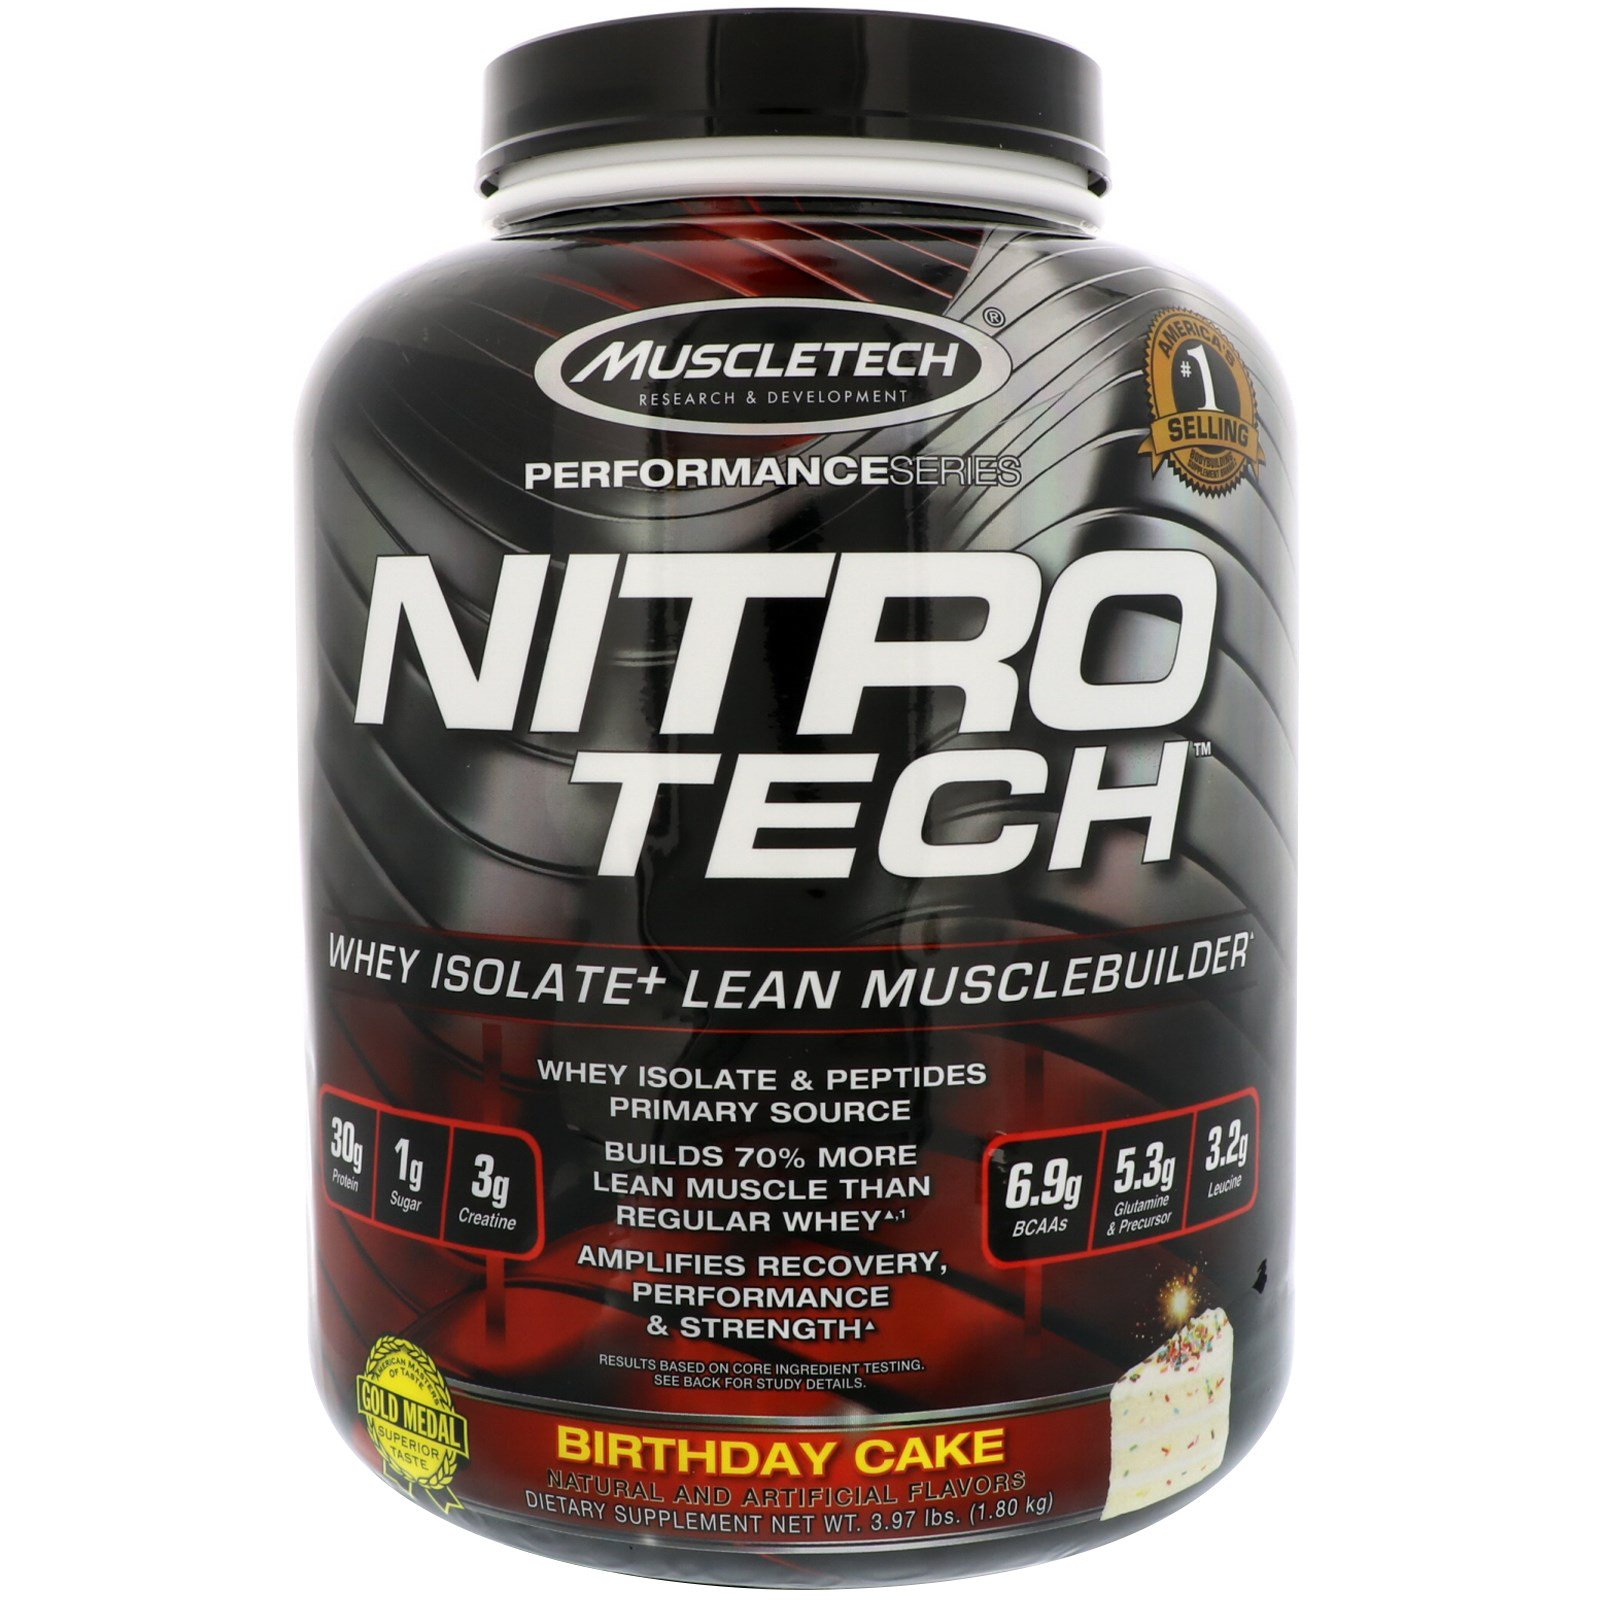 Muscletech Nitro Tech Whey Isolate Lean Musclebuilder Birthday Cake 397 Lbs